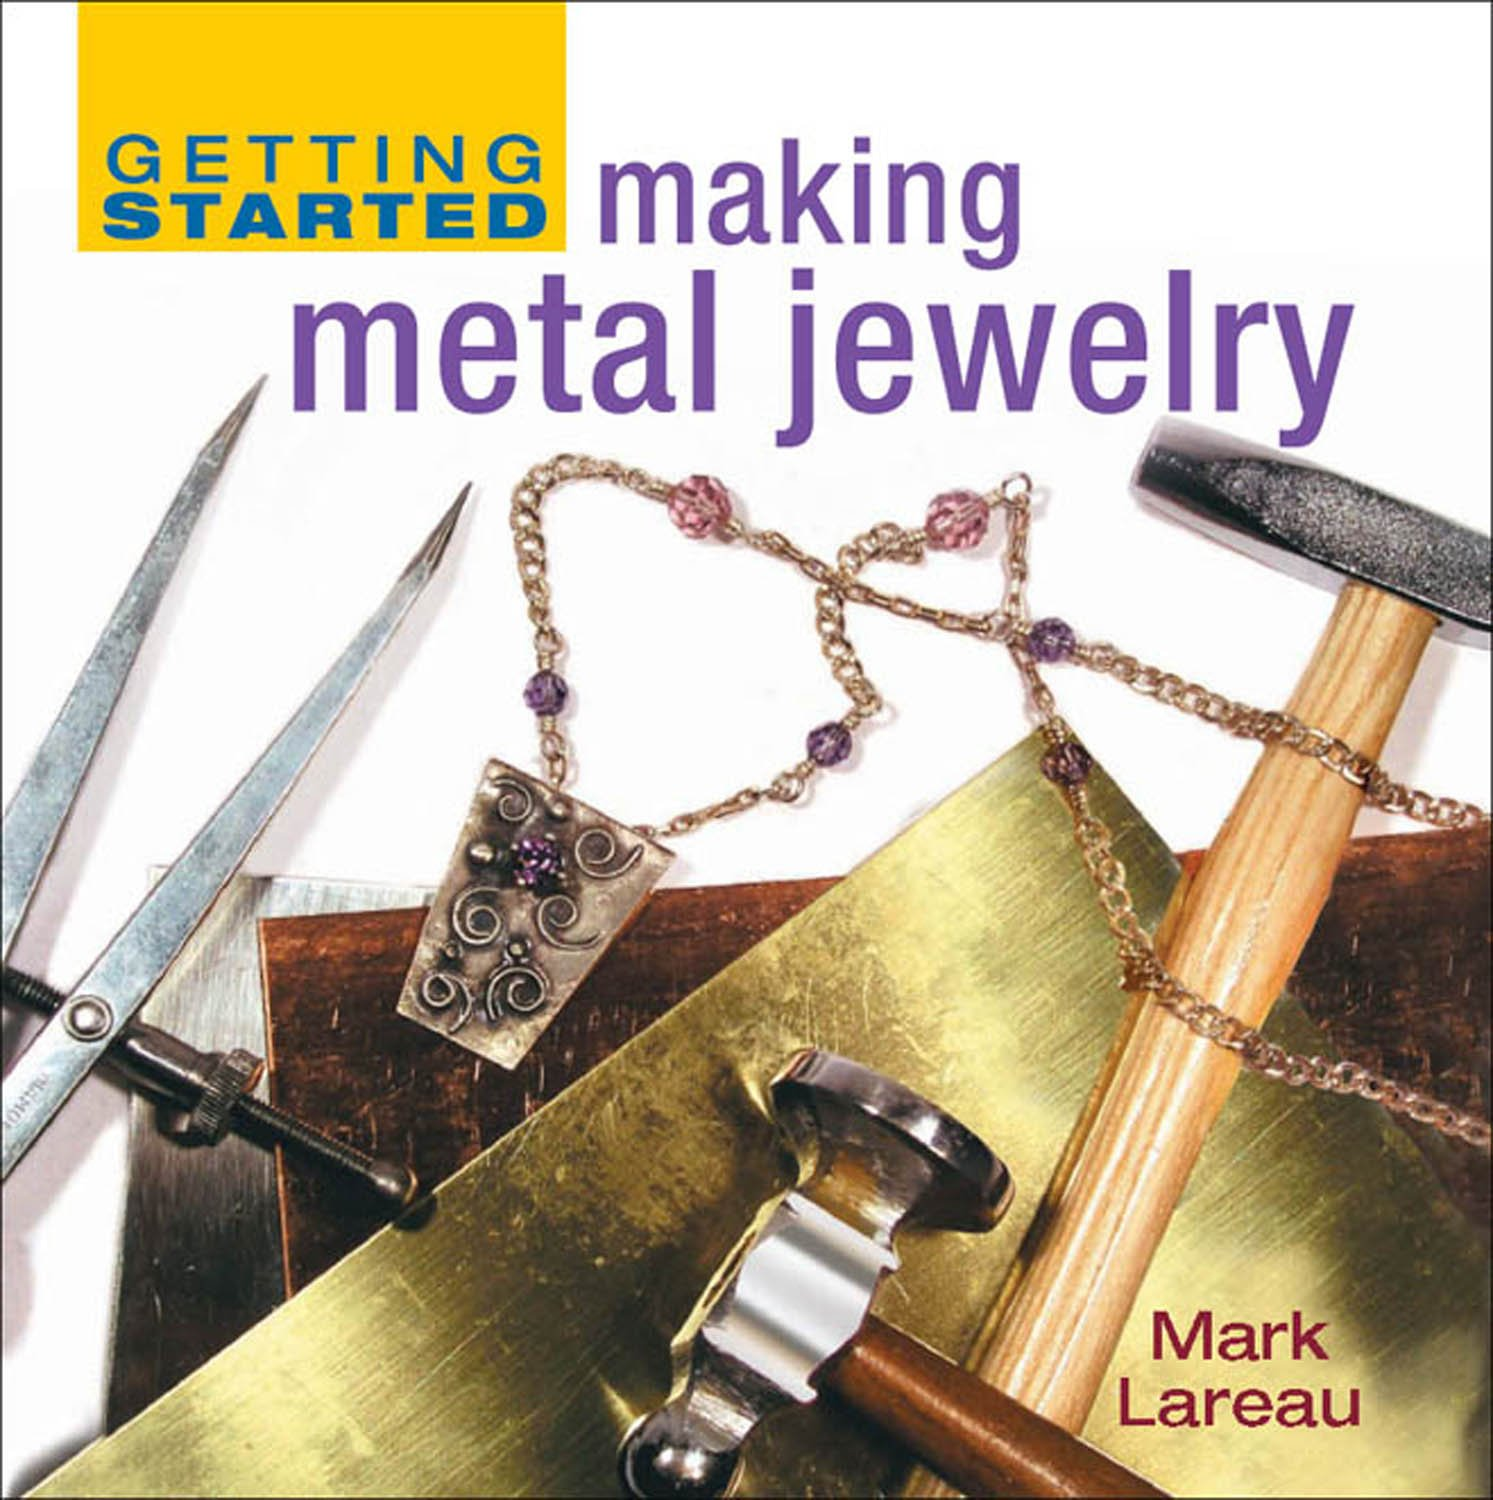 Getting Started Making Metal Jewelry (Getting Started series) ebook